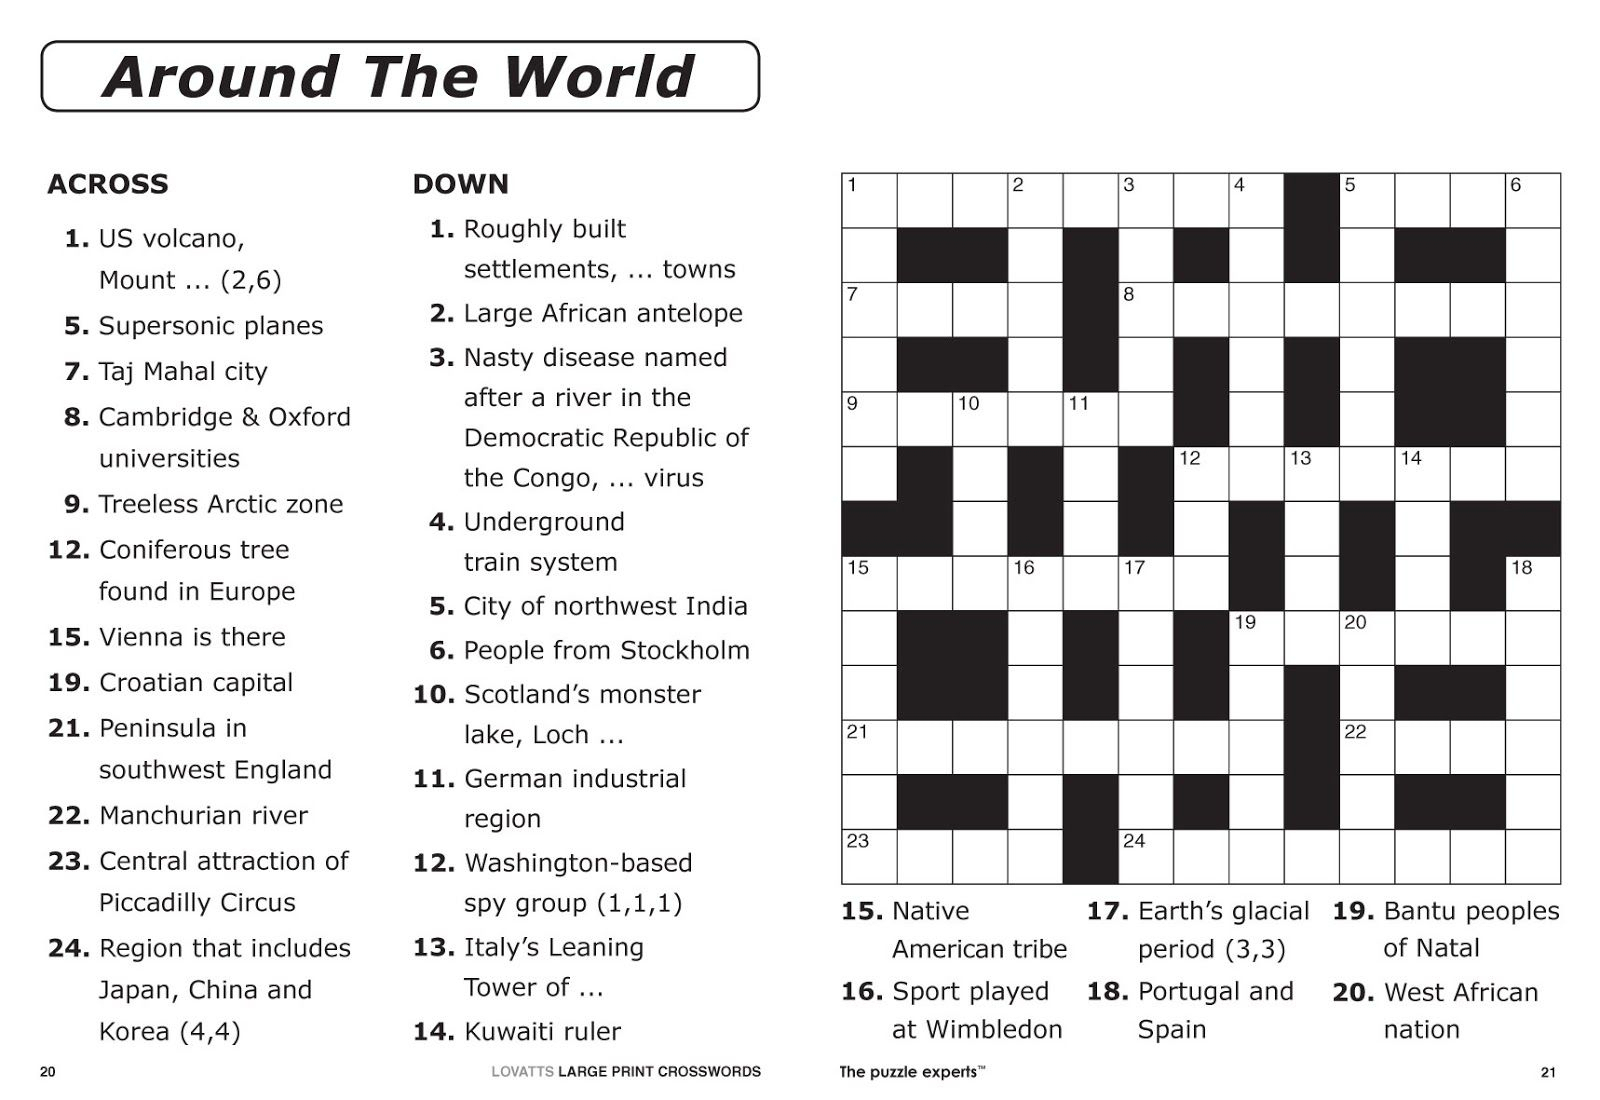 Free Printable Large Print Crossword Puzzles | M3U8 - Printable Crossword Puzzles 7 Year Old